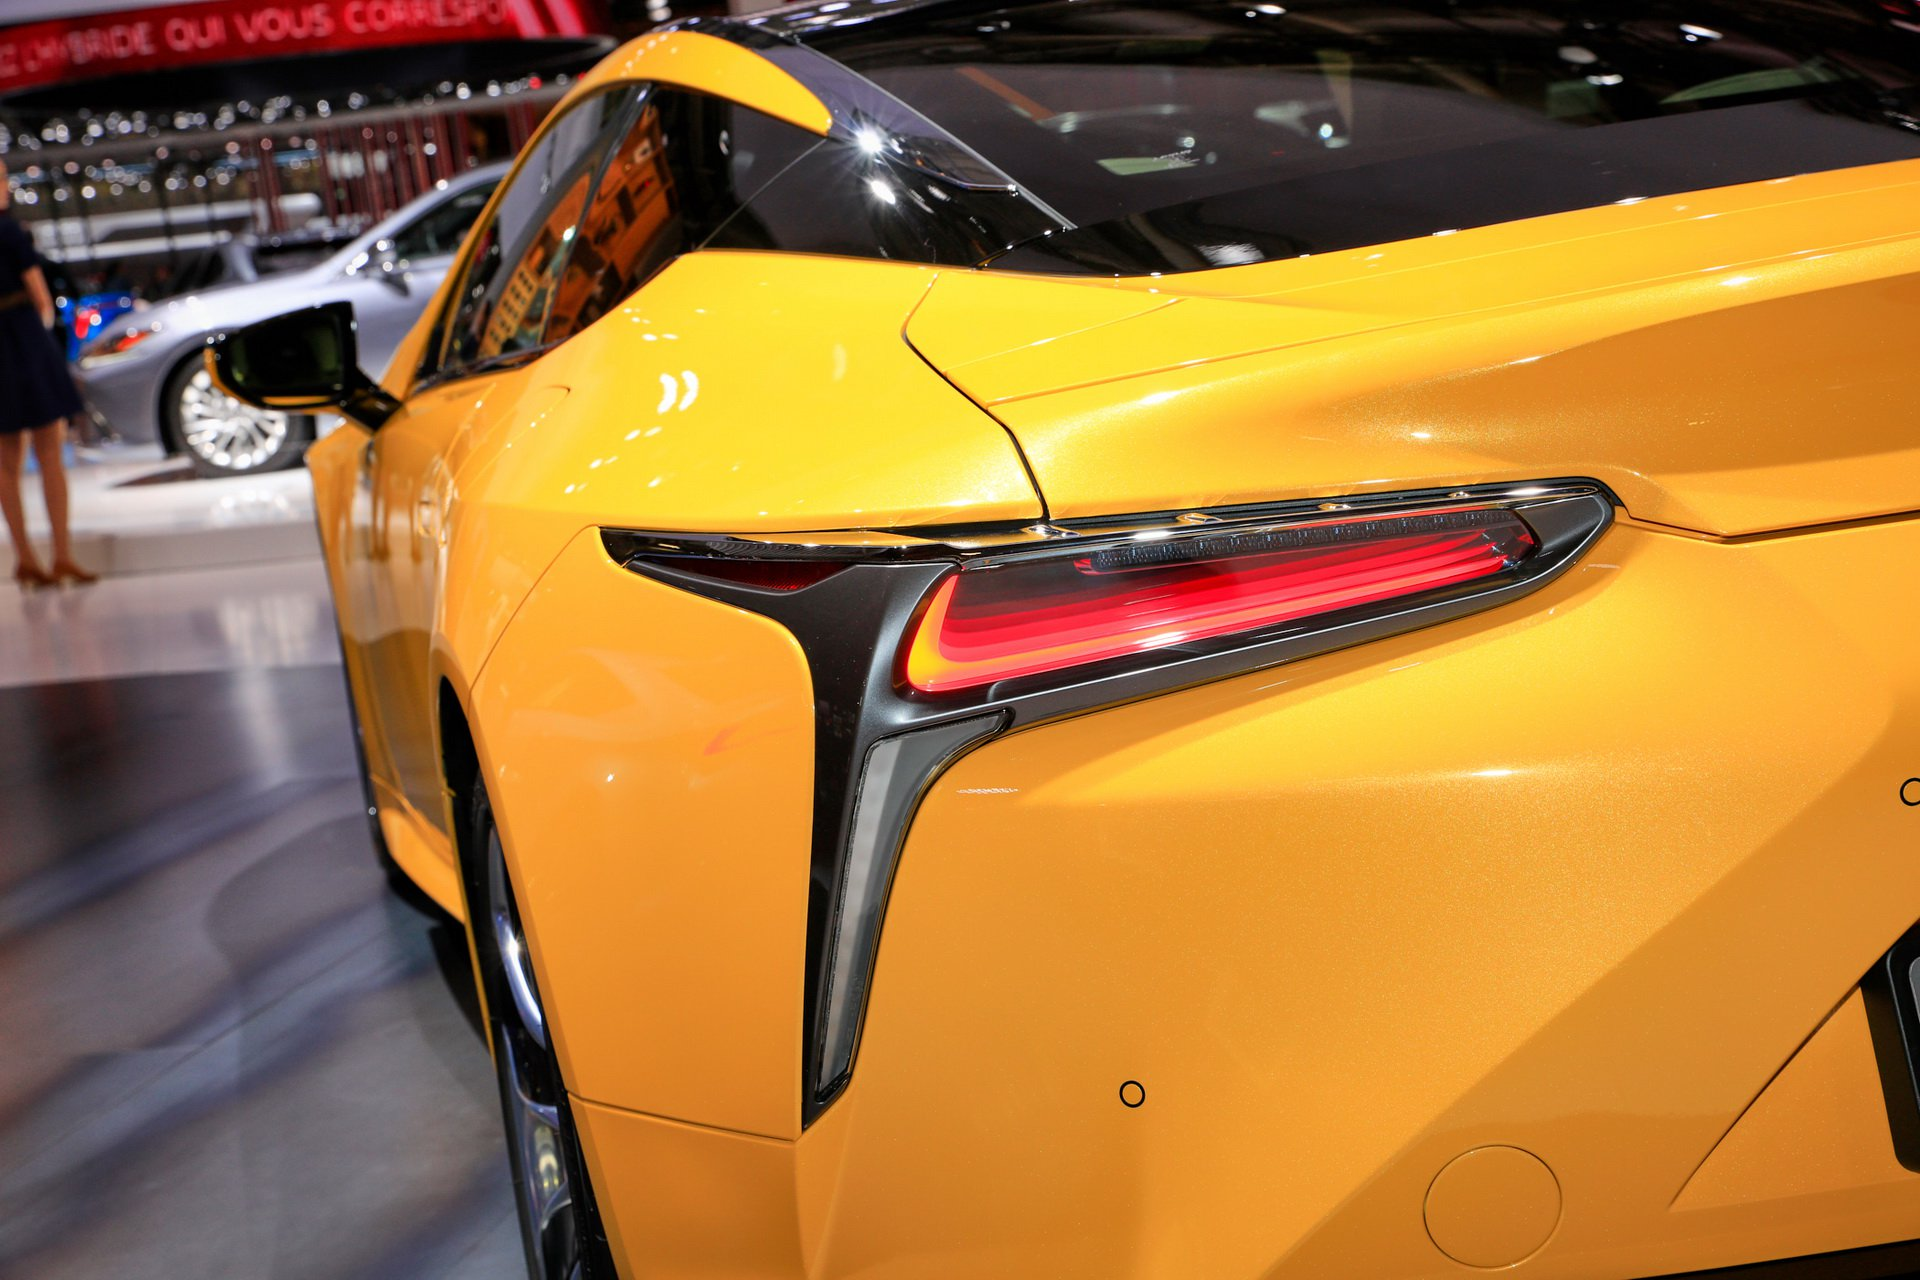 2019-lexus-lc-limited-edition-ra-mat-paris-5.jpg